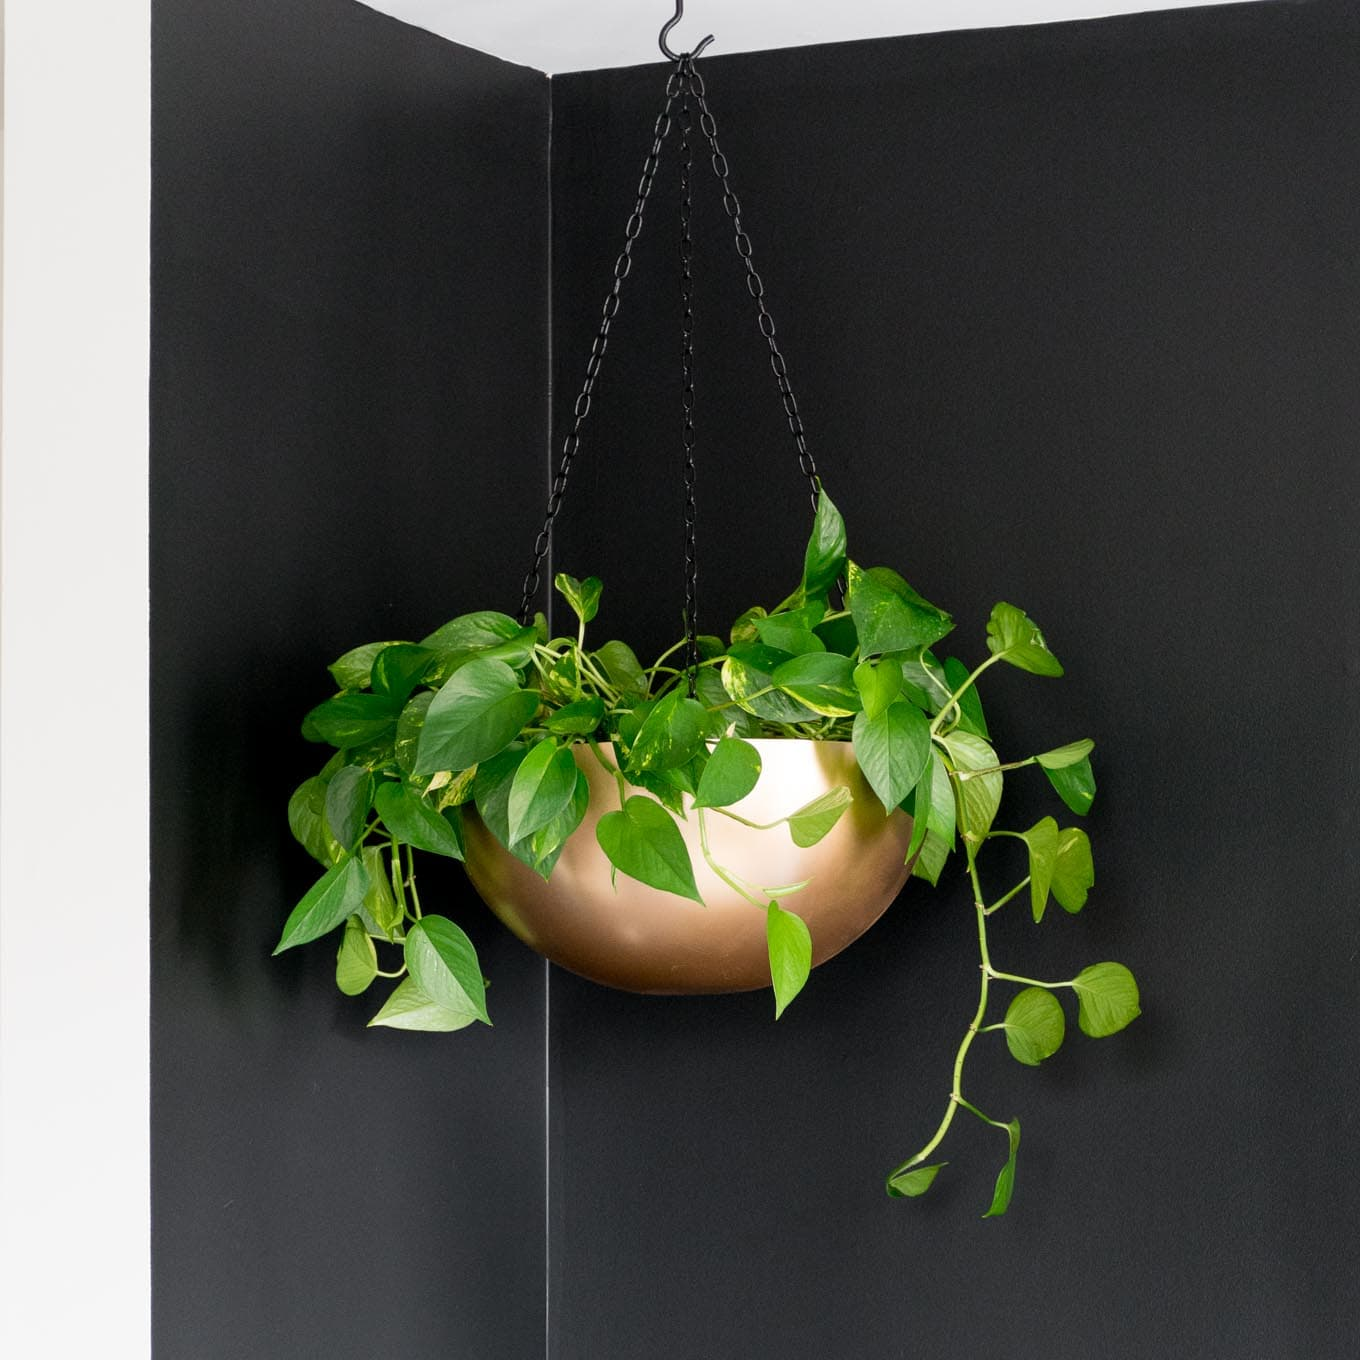 Learn how to make a hanging planter out of a stainless steel bowl and a little paint!